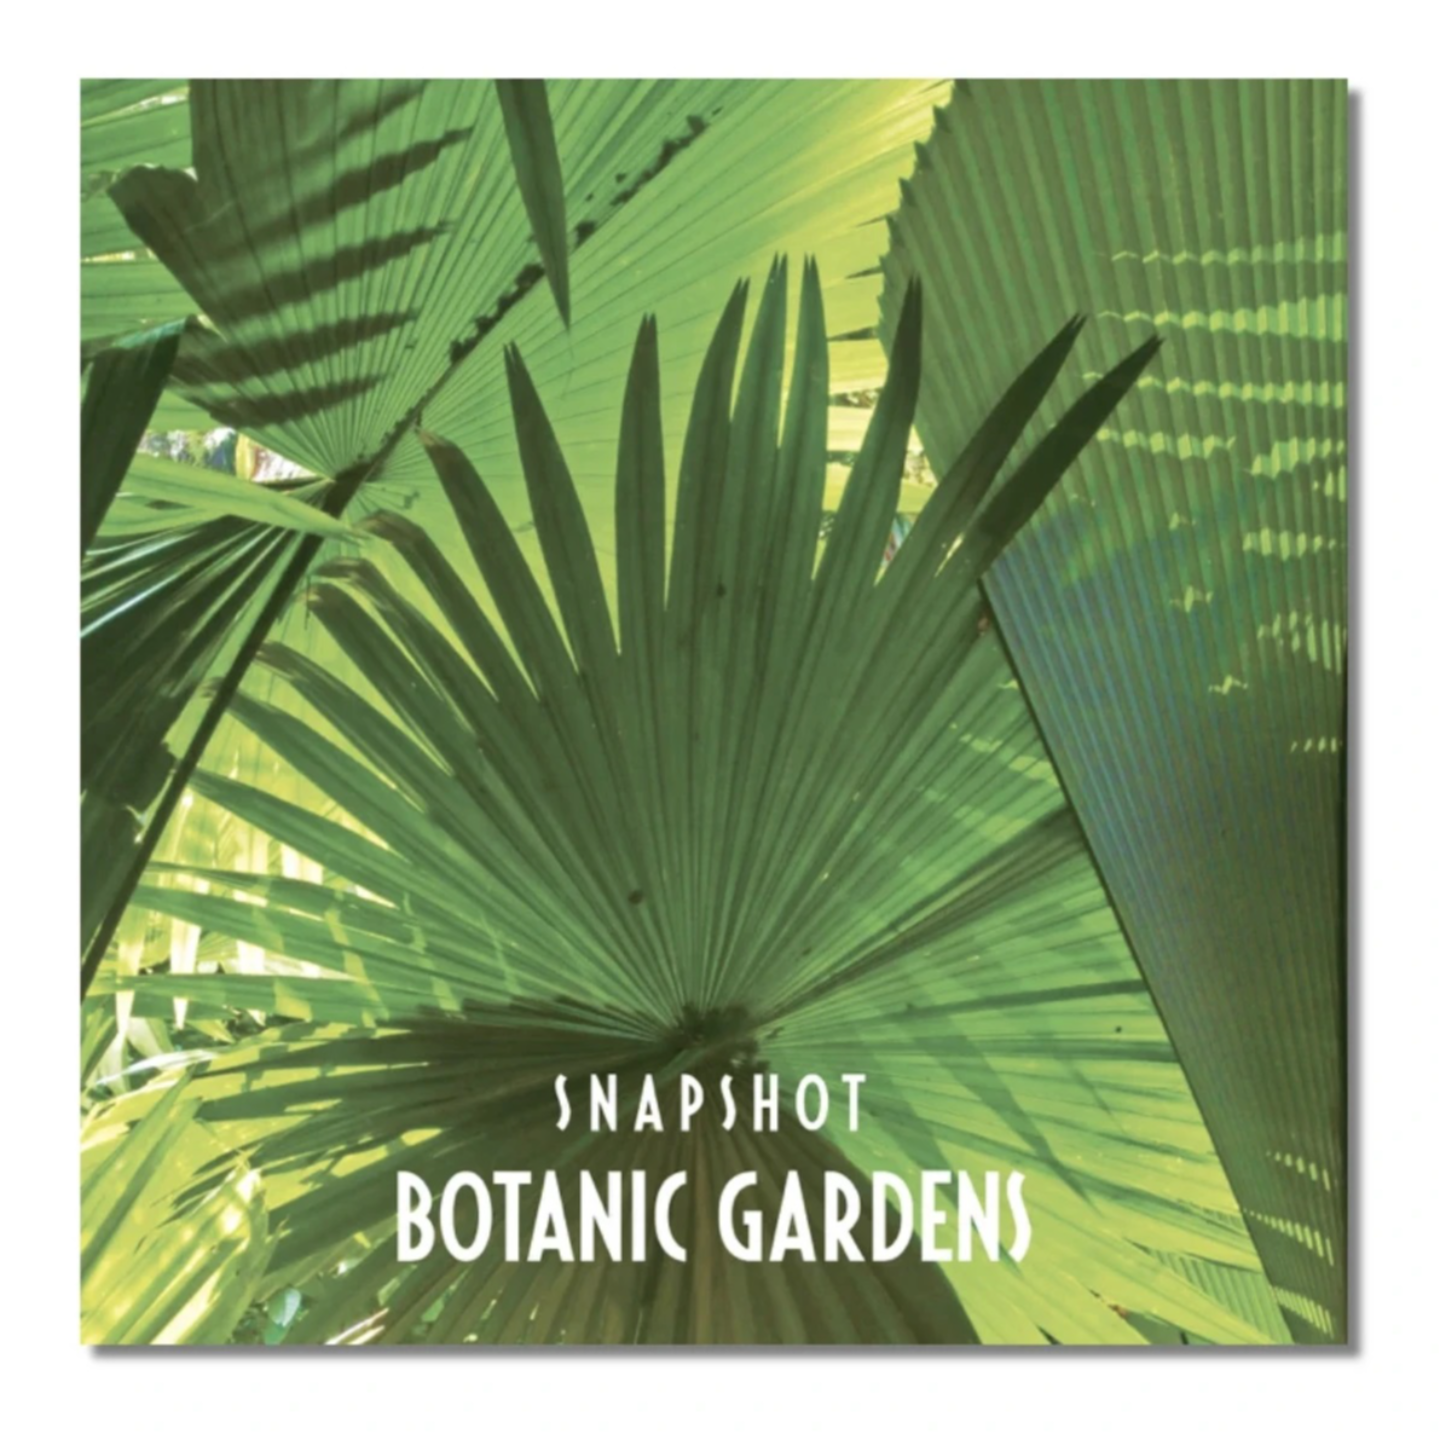 Photo Book: SNAPSHOT - Botanic Gardens